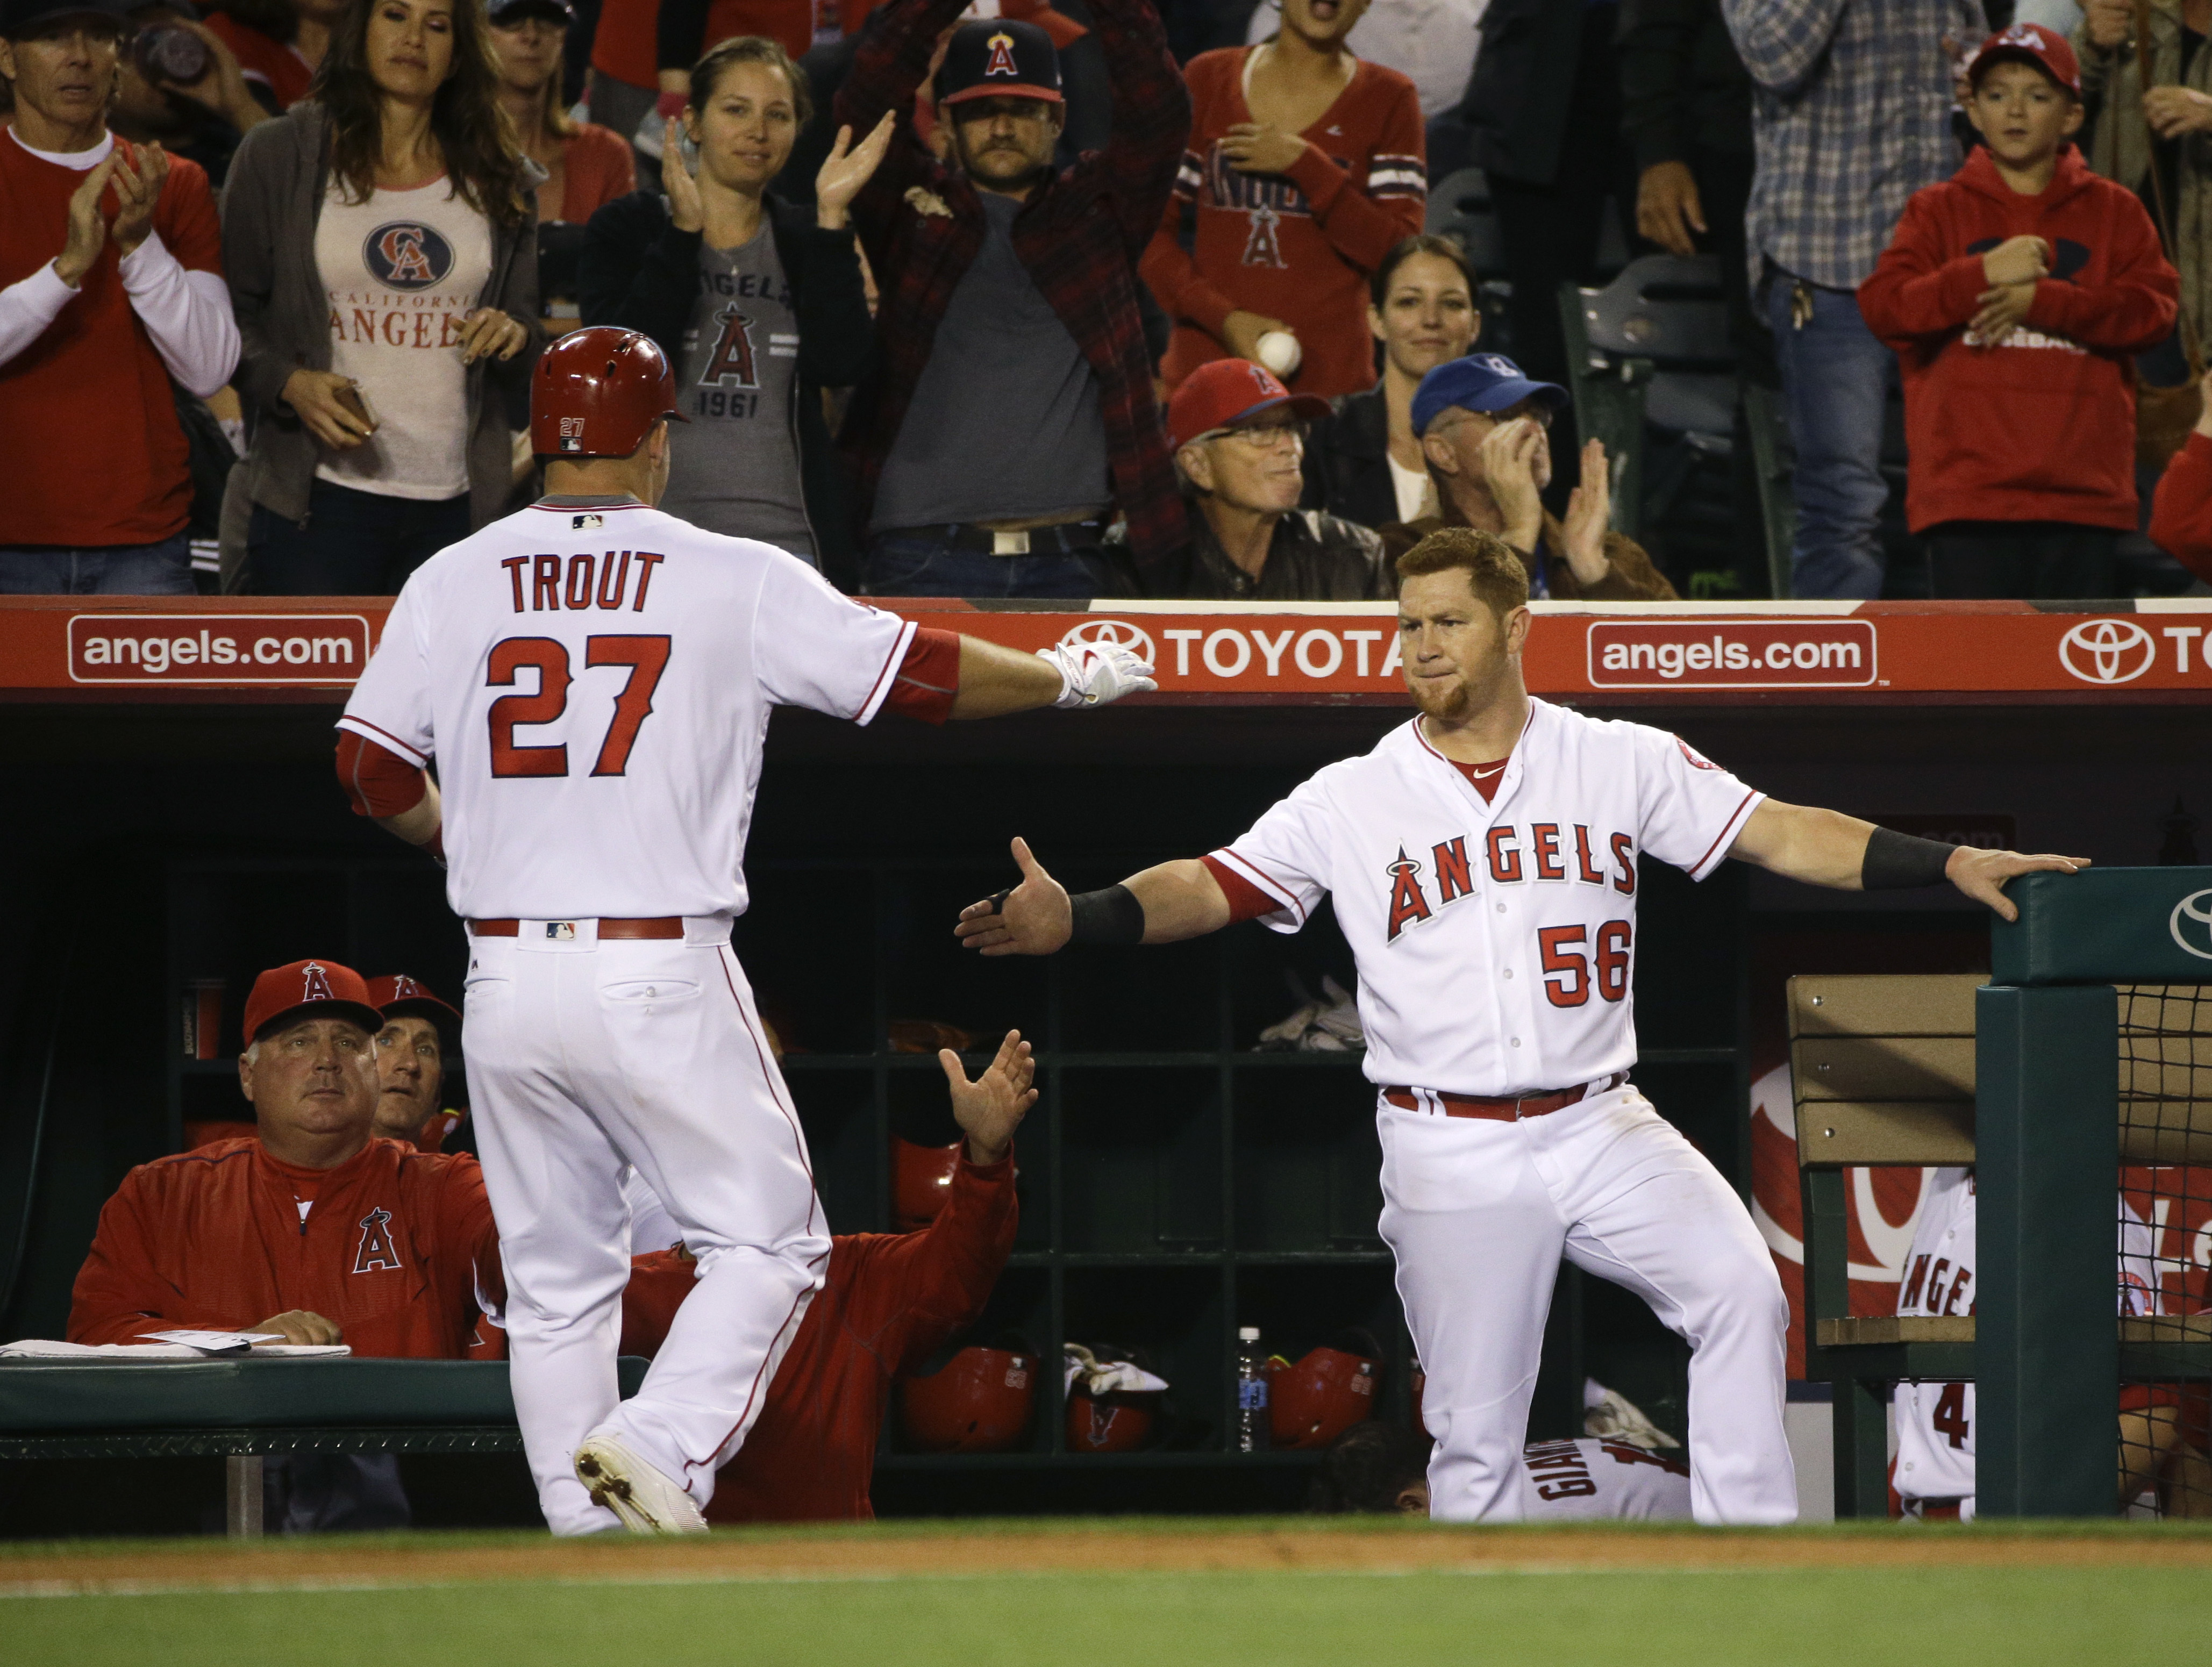 Los Angeles Angels' Mike Trout, left, is greeted by Kole Calhoun after scoring on a double by Jefry Marte during the fourth inning of a baseball game against the Cleveland Indians, Saturday, June 11, 2016, in Anaheim, Calif. (AP Photo/Jae C. Hong)